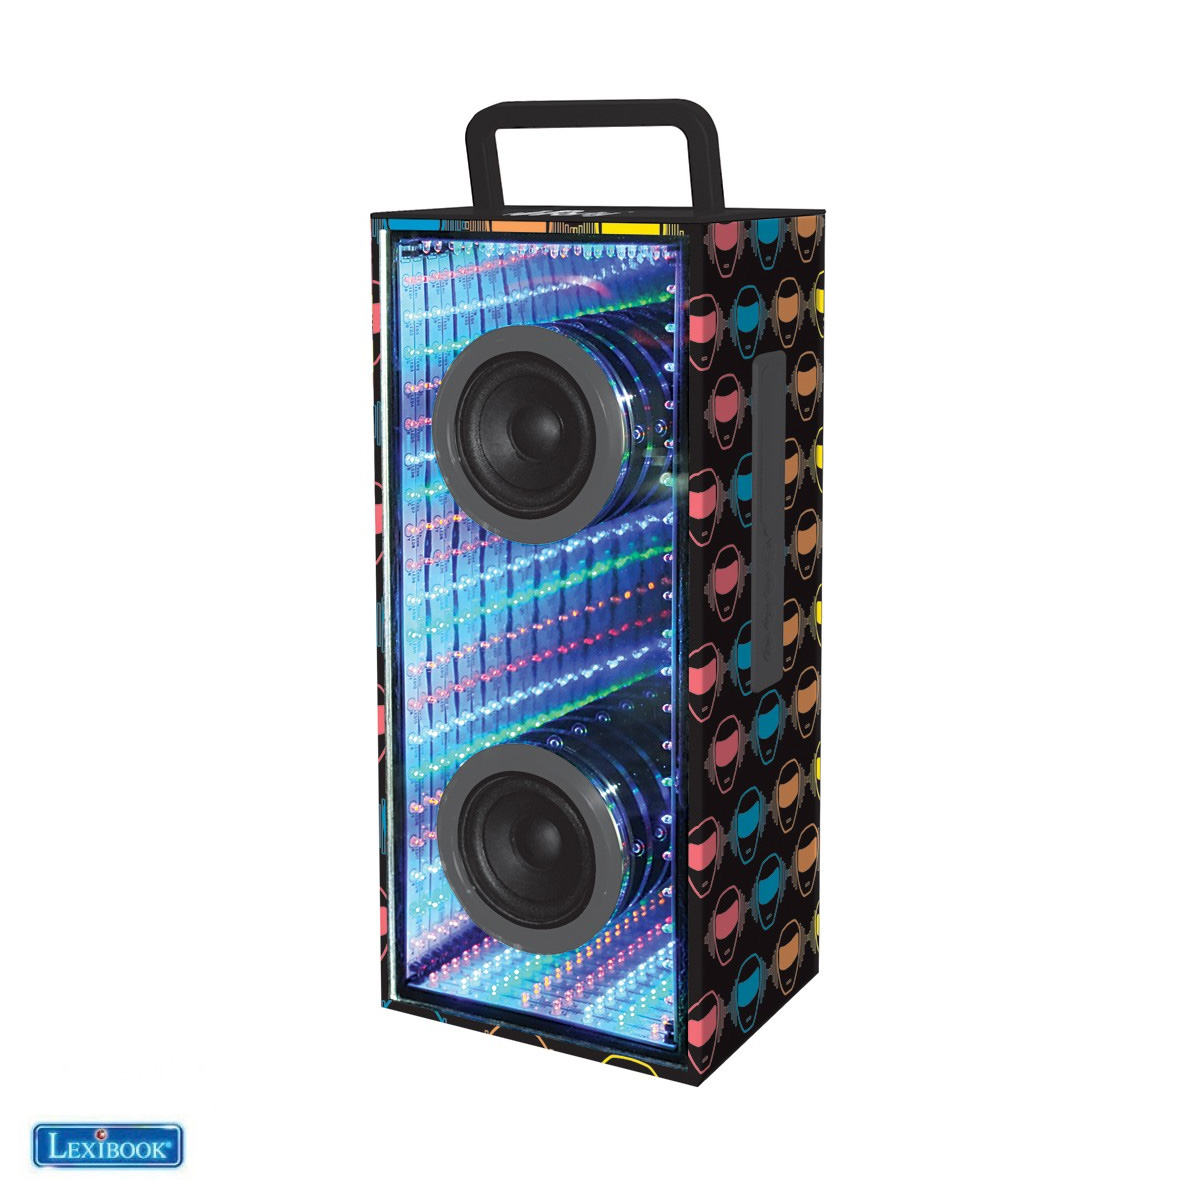 Lexibook - iParty Bluetooth Portable Speaker with magical infinity flashing lights (BTL600)